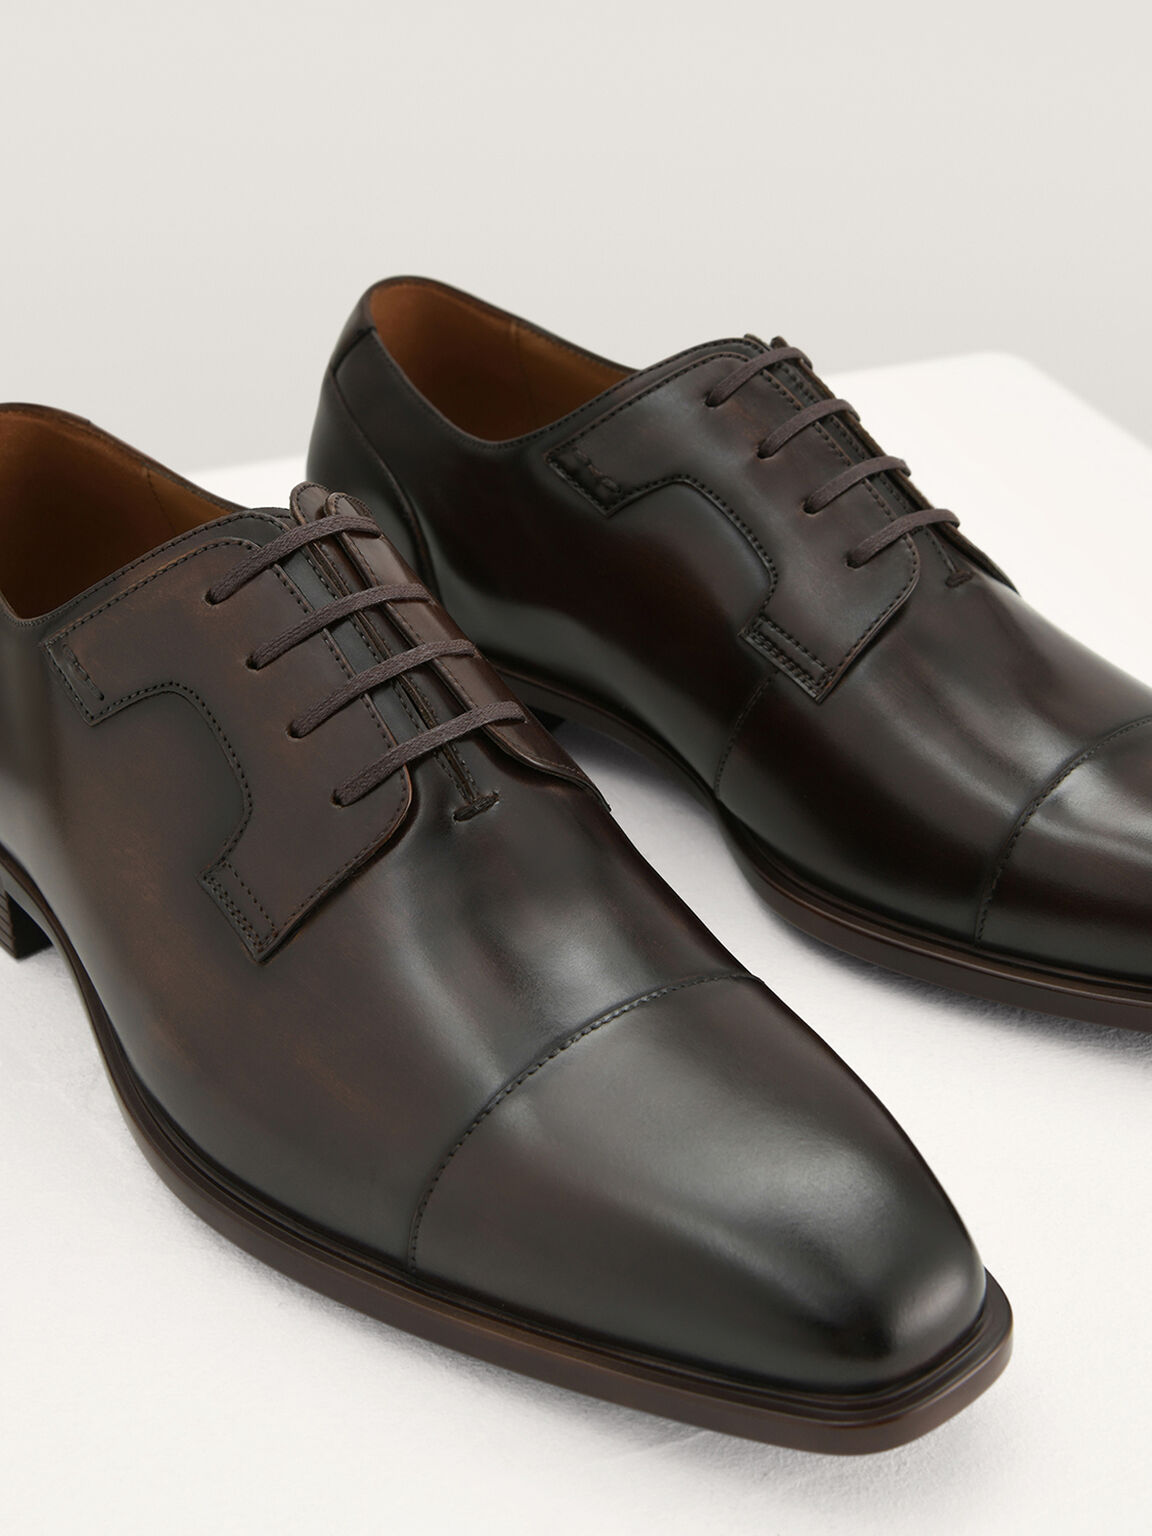 Pointed Toe Leather Derby Shoes, Light Brown, hi-res